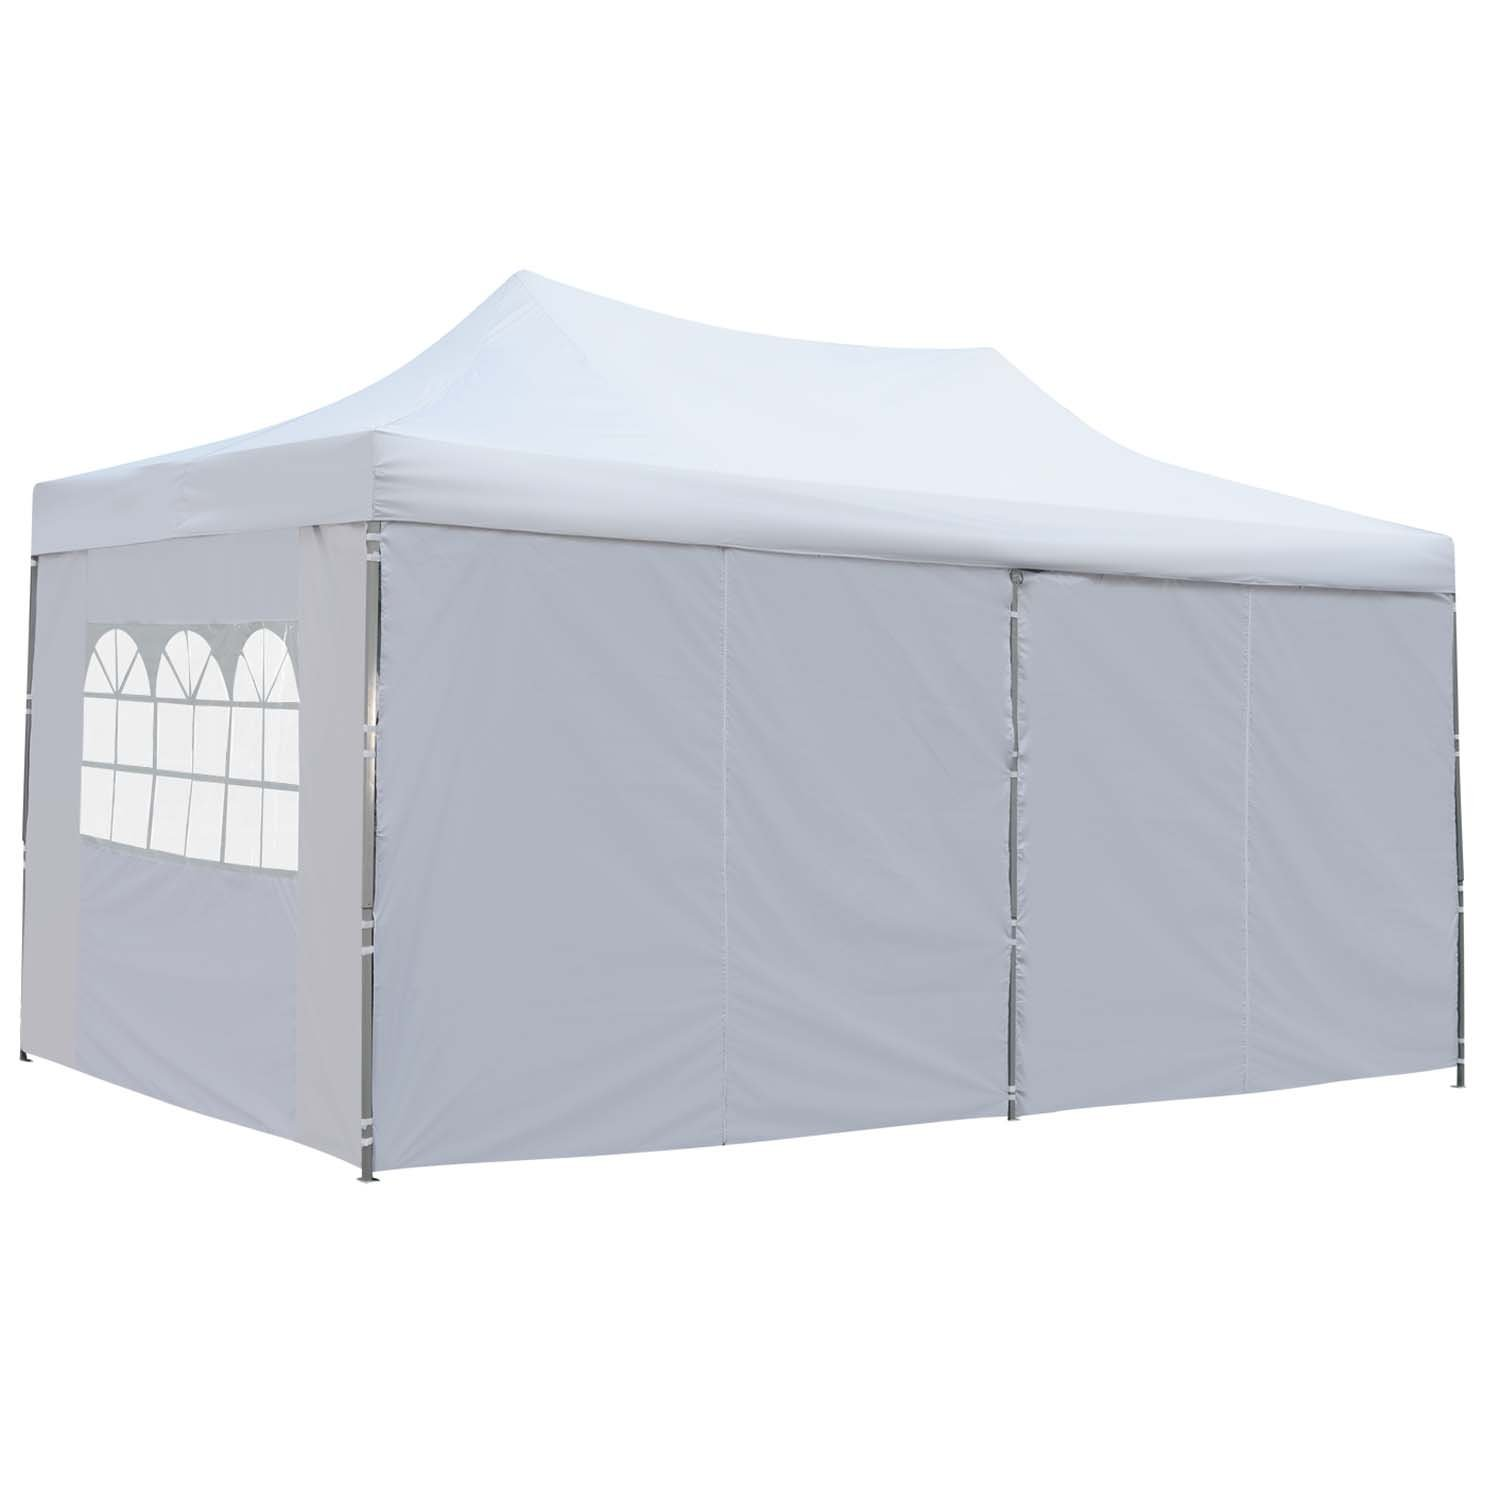 Outdoor Basic 10x20 Ft Pop up Canopy Party Wedding Gazebo Tent Shelter with Removable Side Walls White by Outdoor Basic (Image #3)